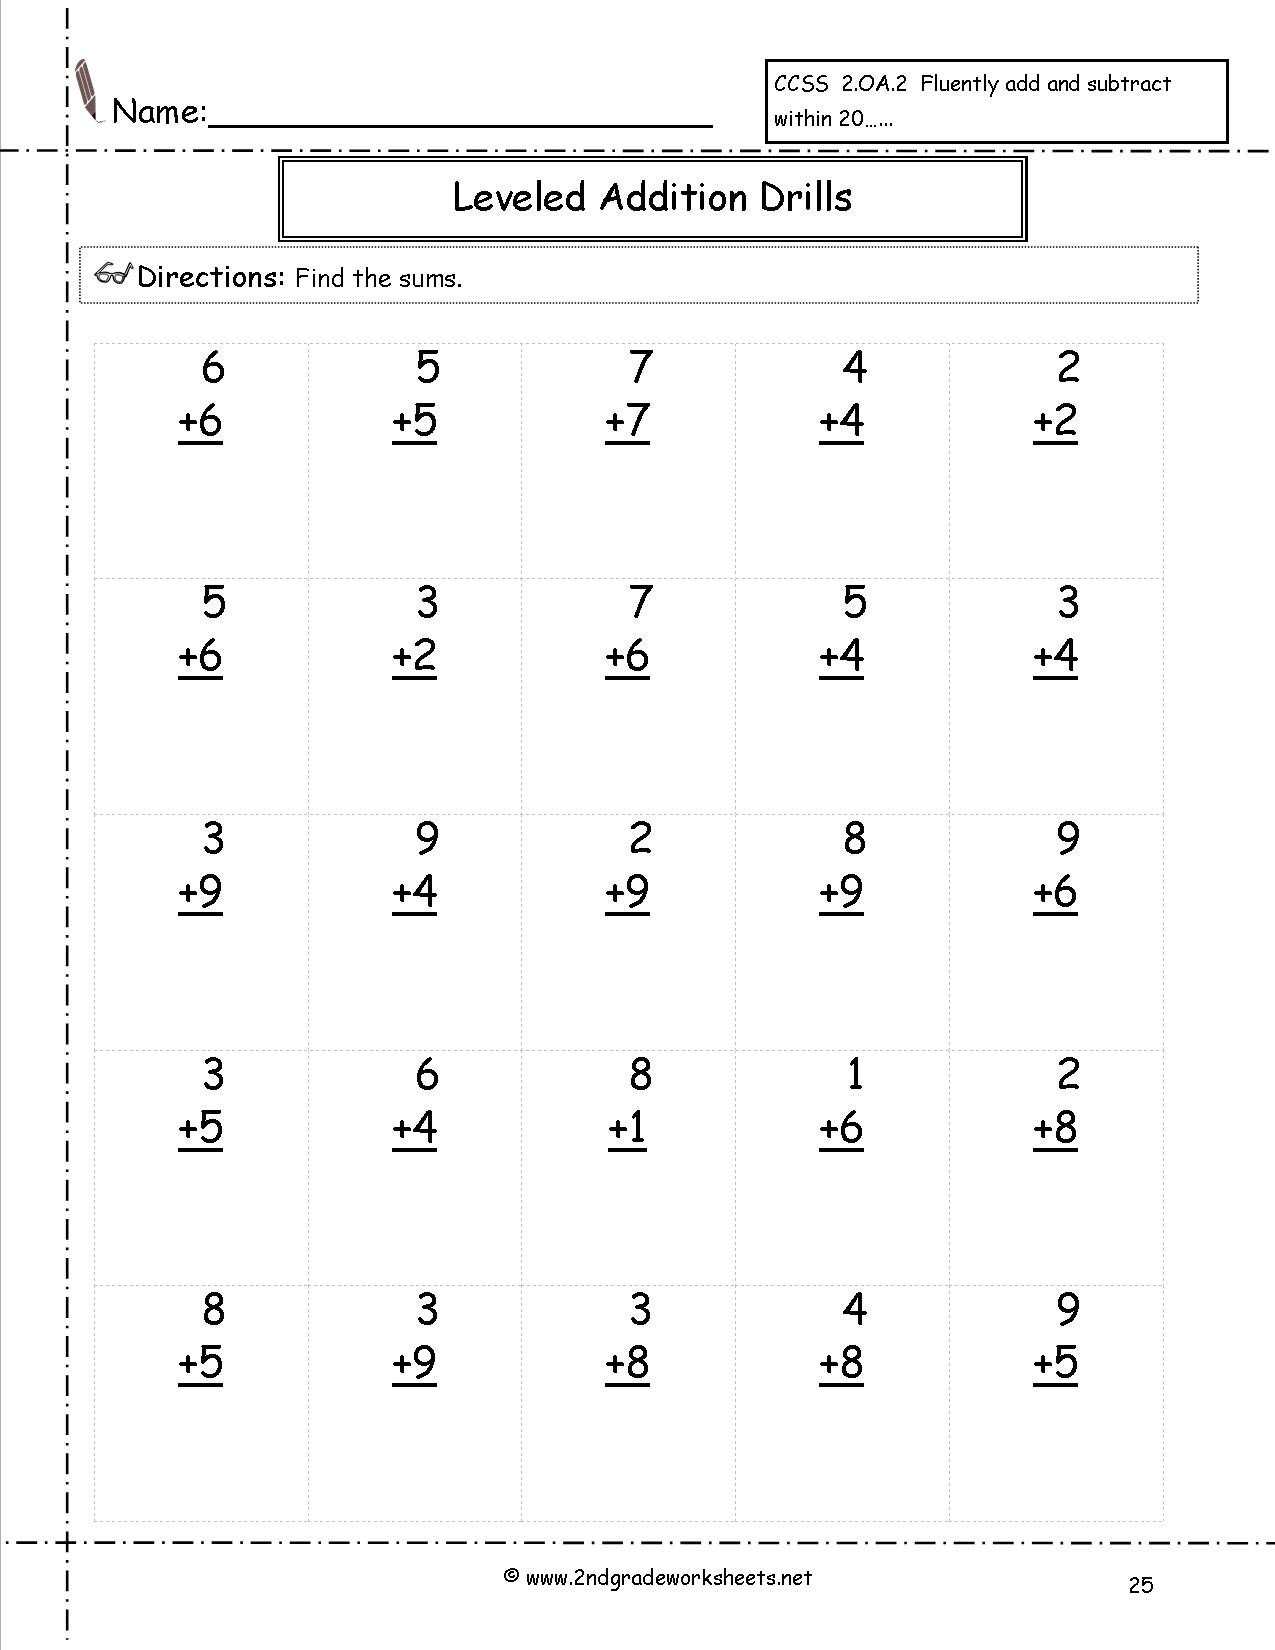 free math worksheets and printouts 2nd grade multiplication additiondrills25 leveled